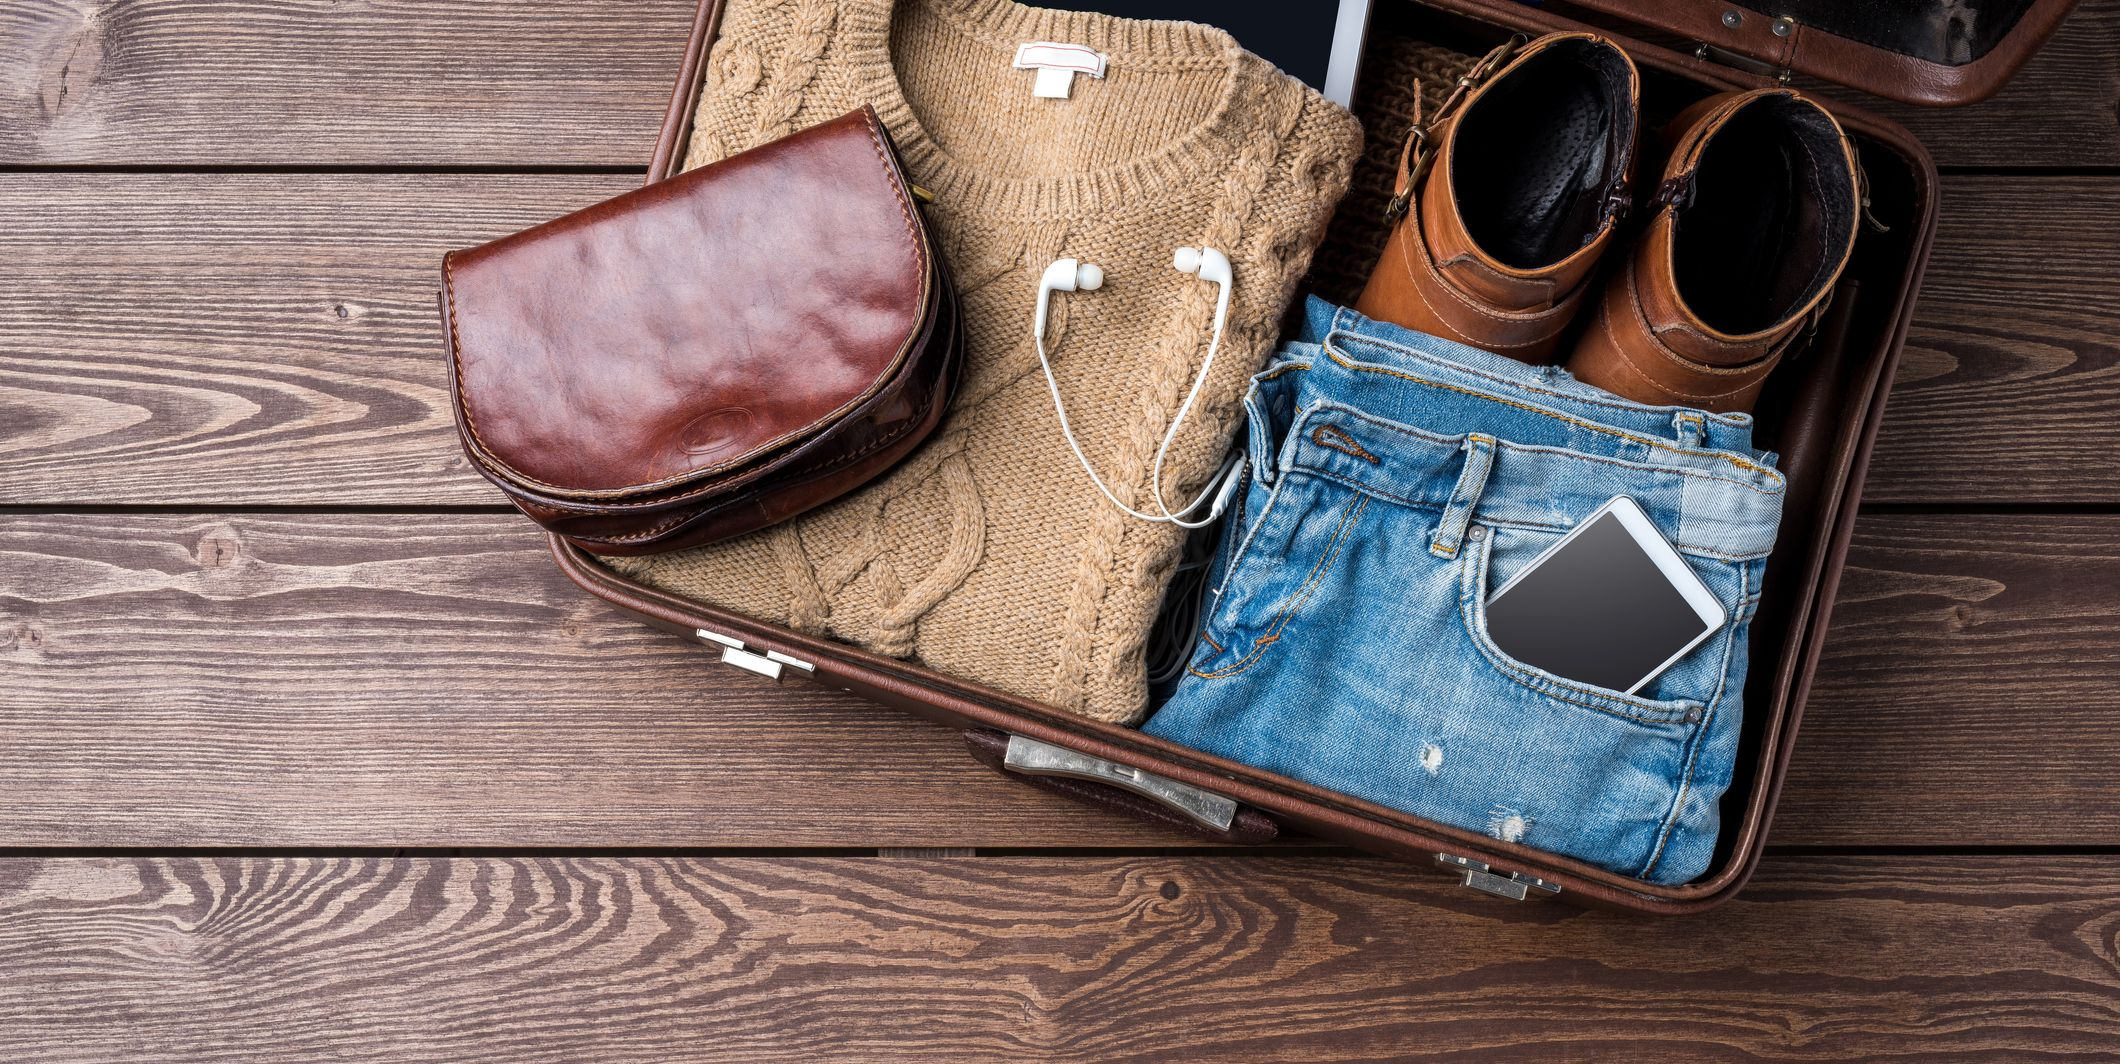 10 Products That Help You Perfectly Pack Any Suitcase